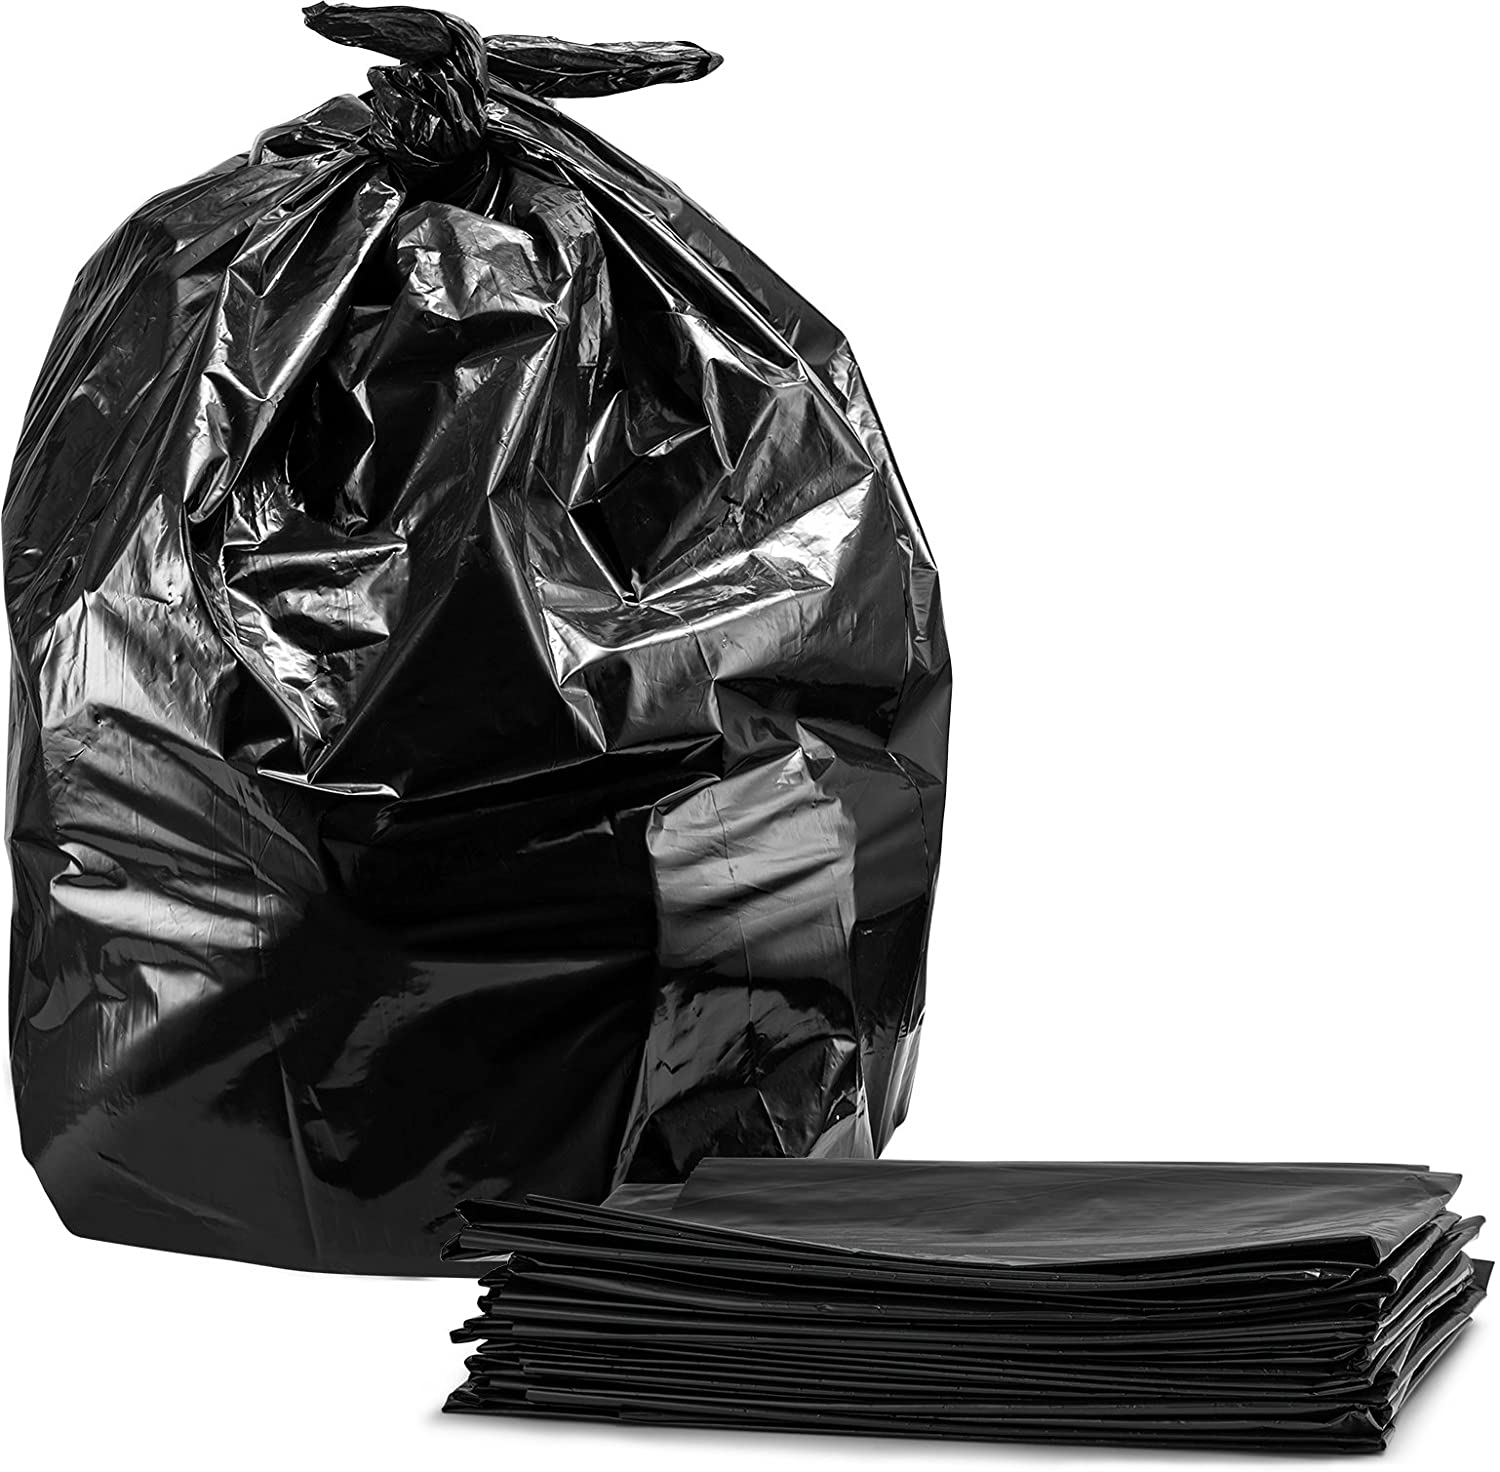 55-60 Gallon Contractor Trash Bags, 3.0 Mil, Large Black Heavy Duty Garbage Bags, (50)